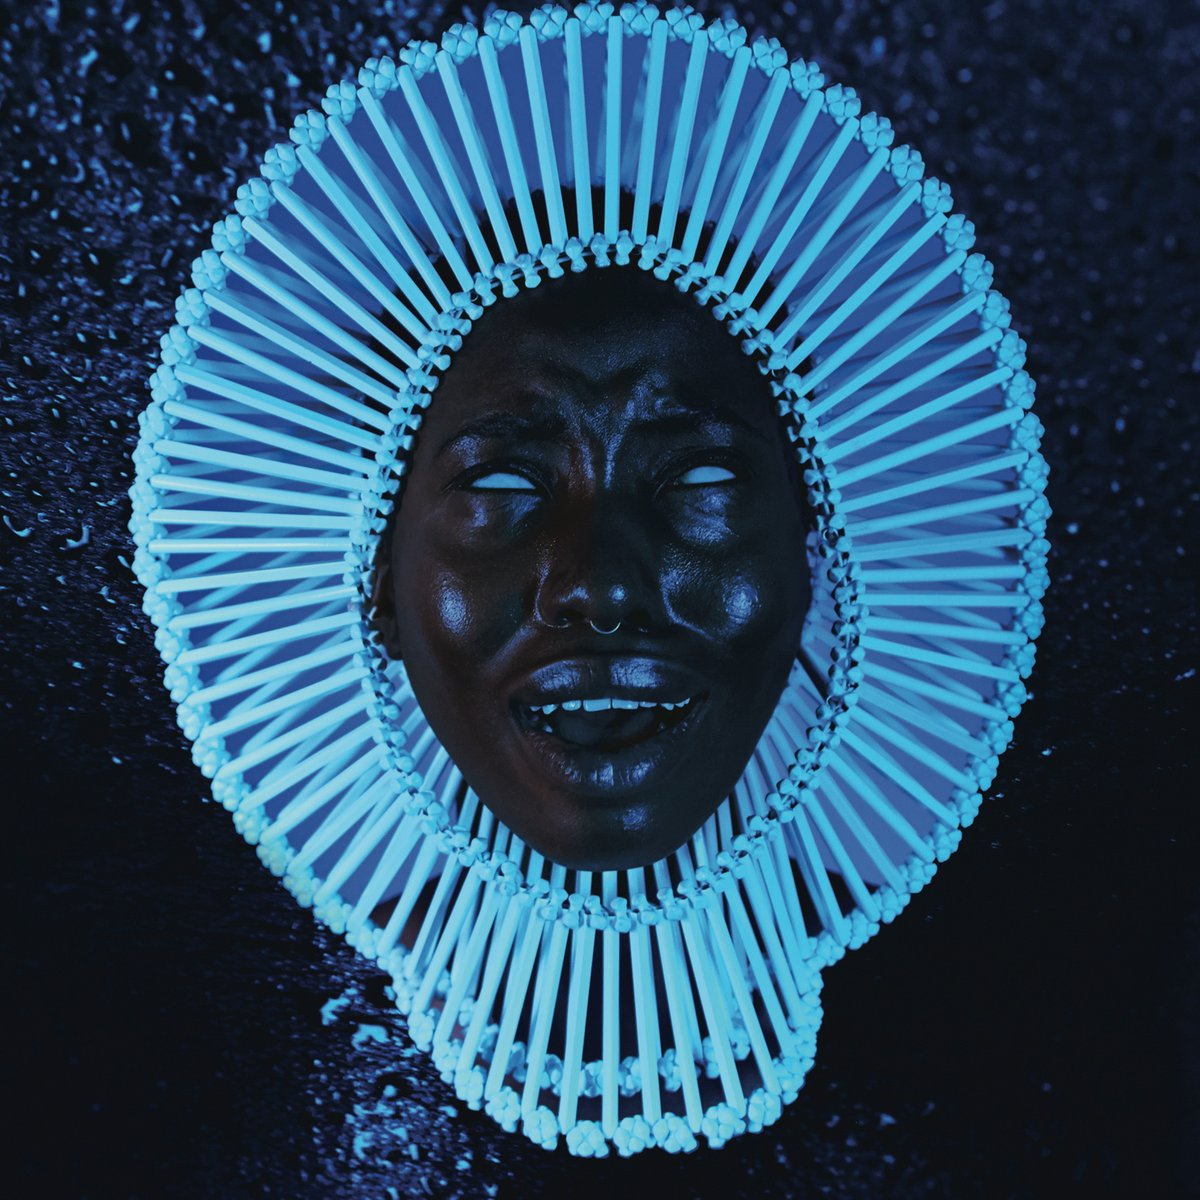 Awaken My Love